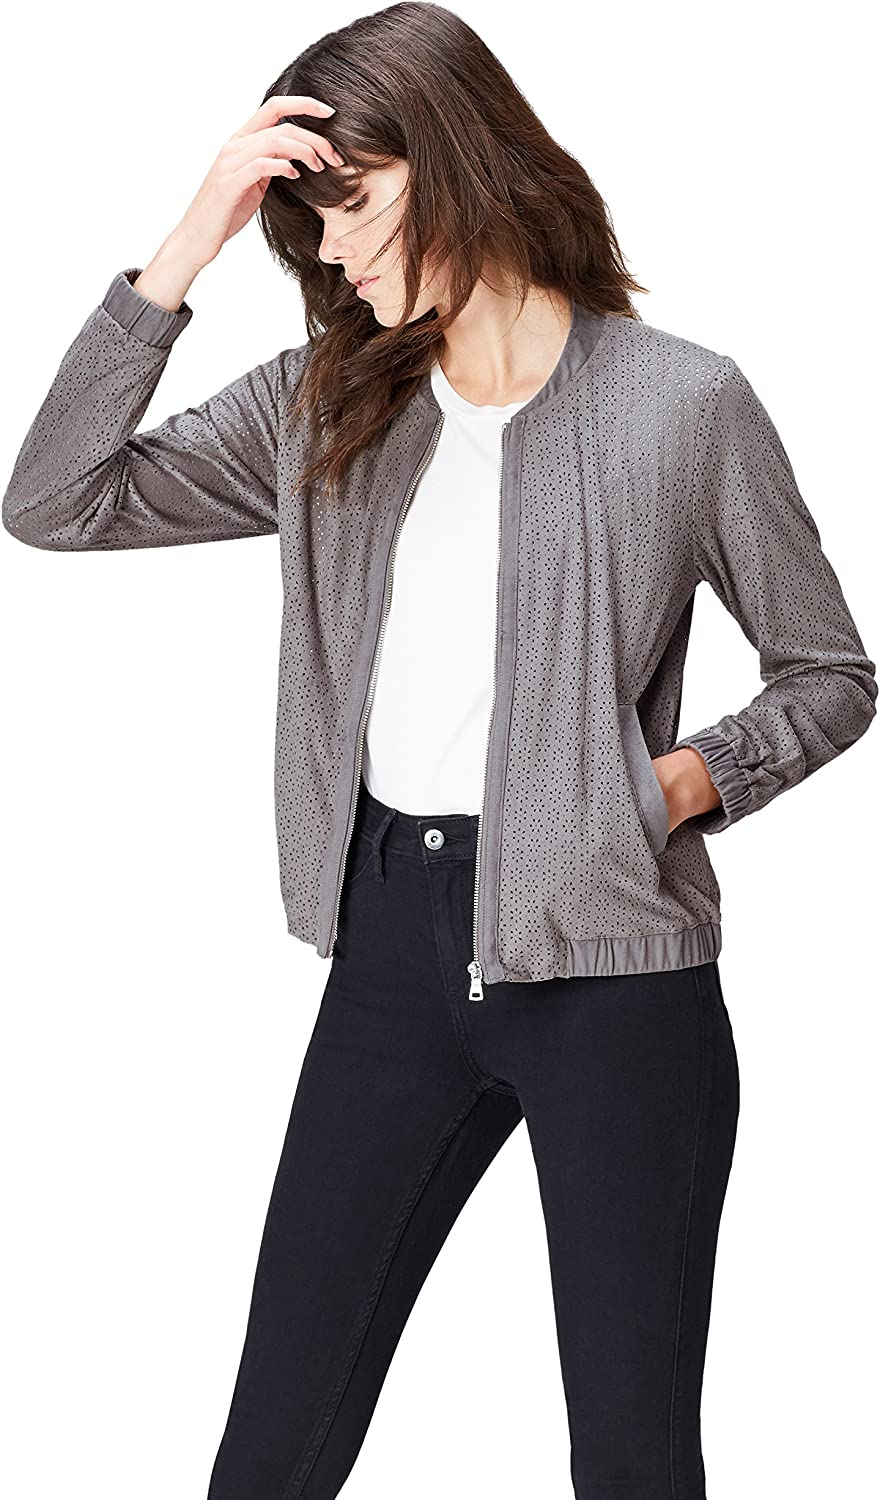 FIND Womens Jacket in Laser Cut-Out Suede in Bomber Style